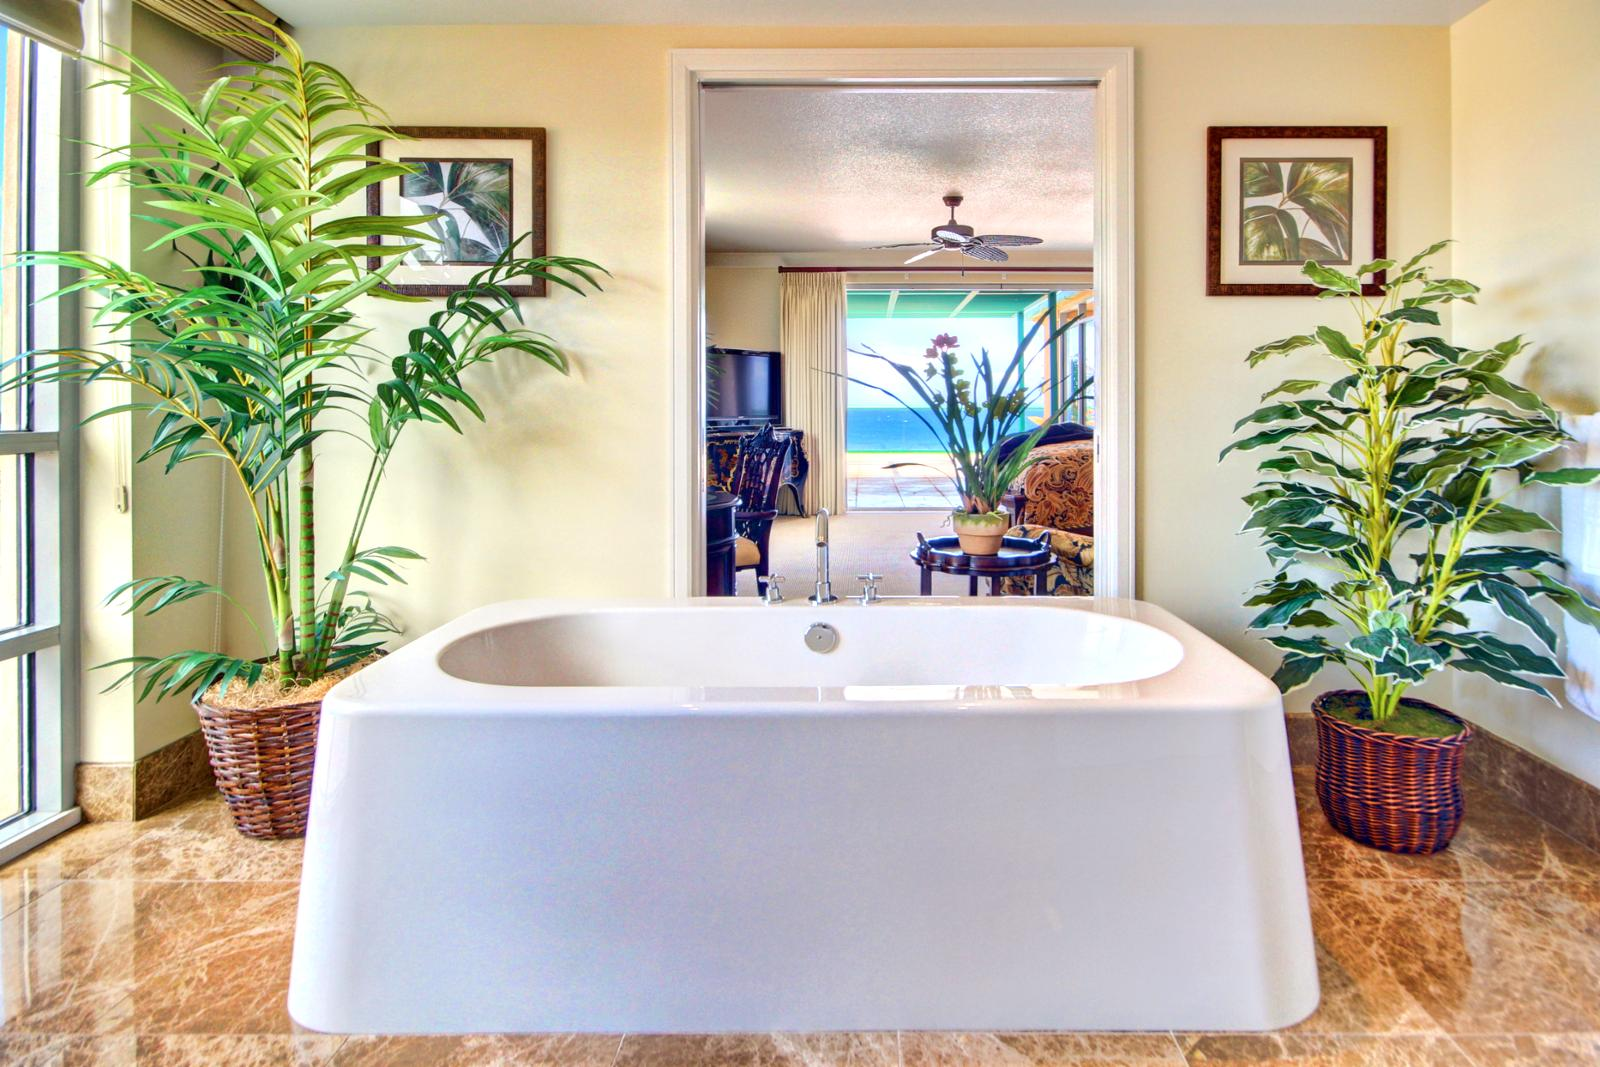 This master bathroom has a great soaking tub with a view of the ocean.